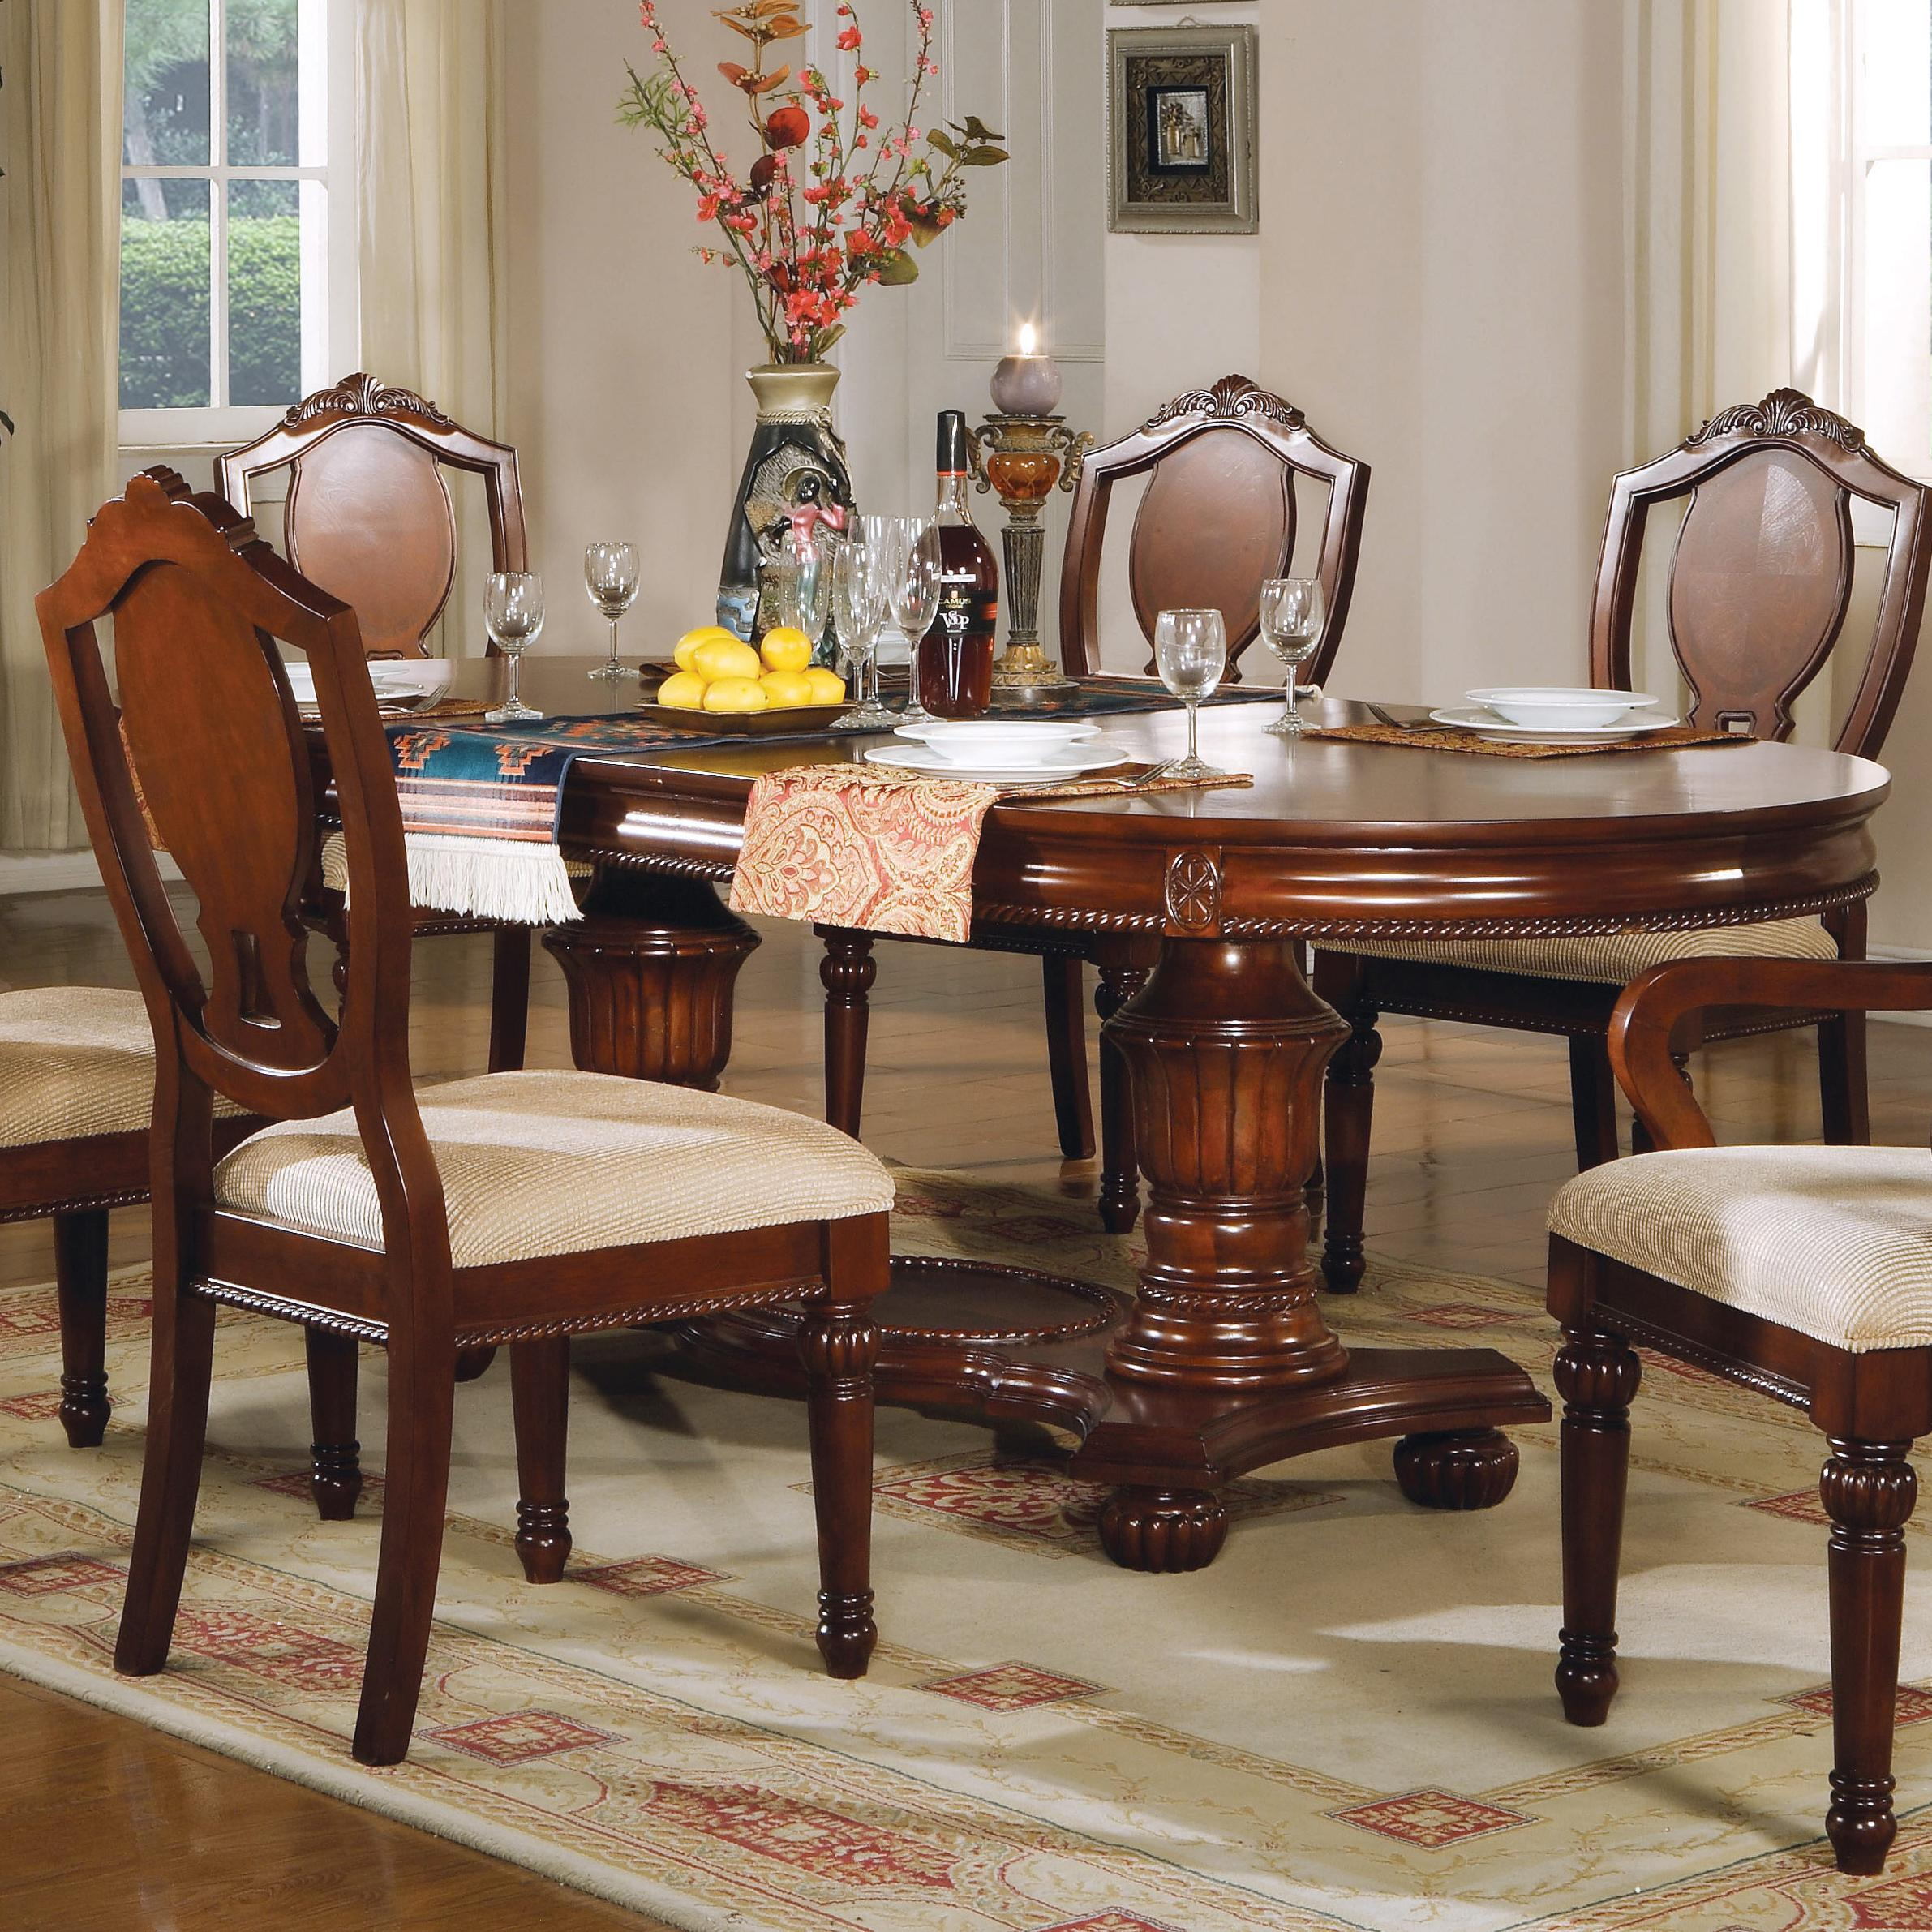 11800 Double Pedestal Table by Acme Furniture at Carolina Direct